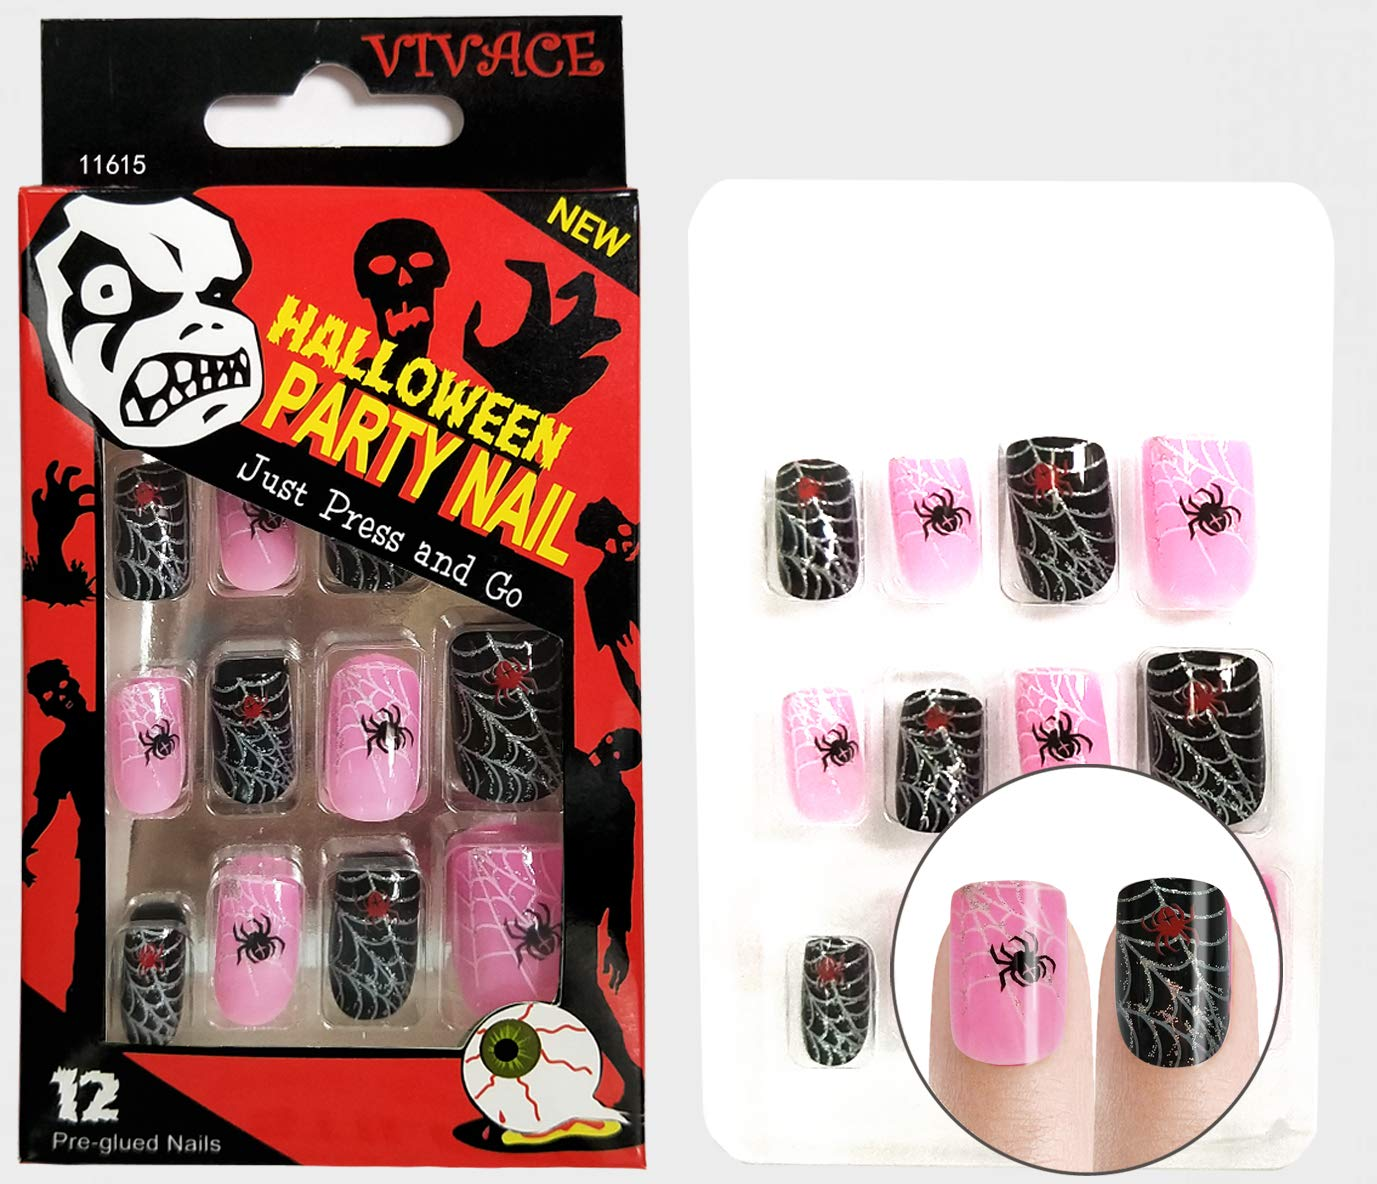 Amazon.com: Vivace Press On 12 Tips Holloween Novelty Nails ...